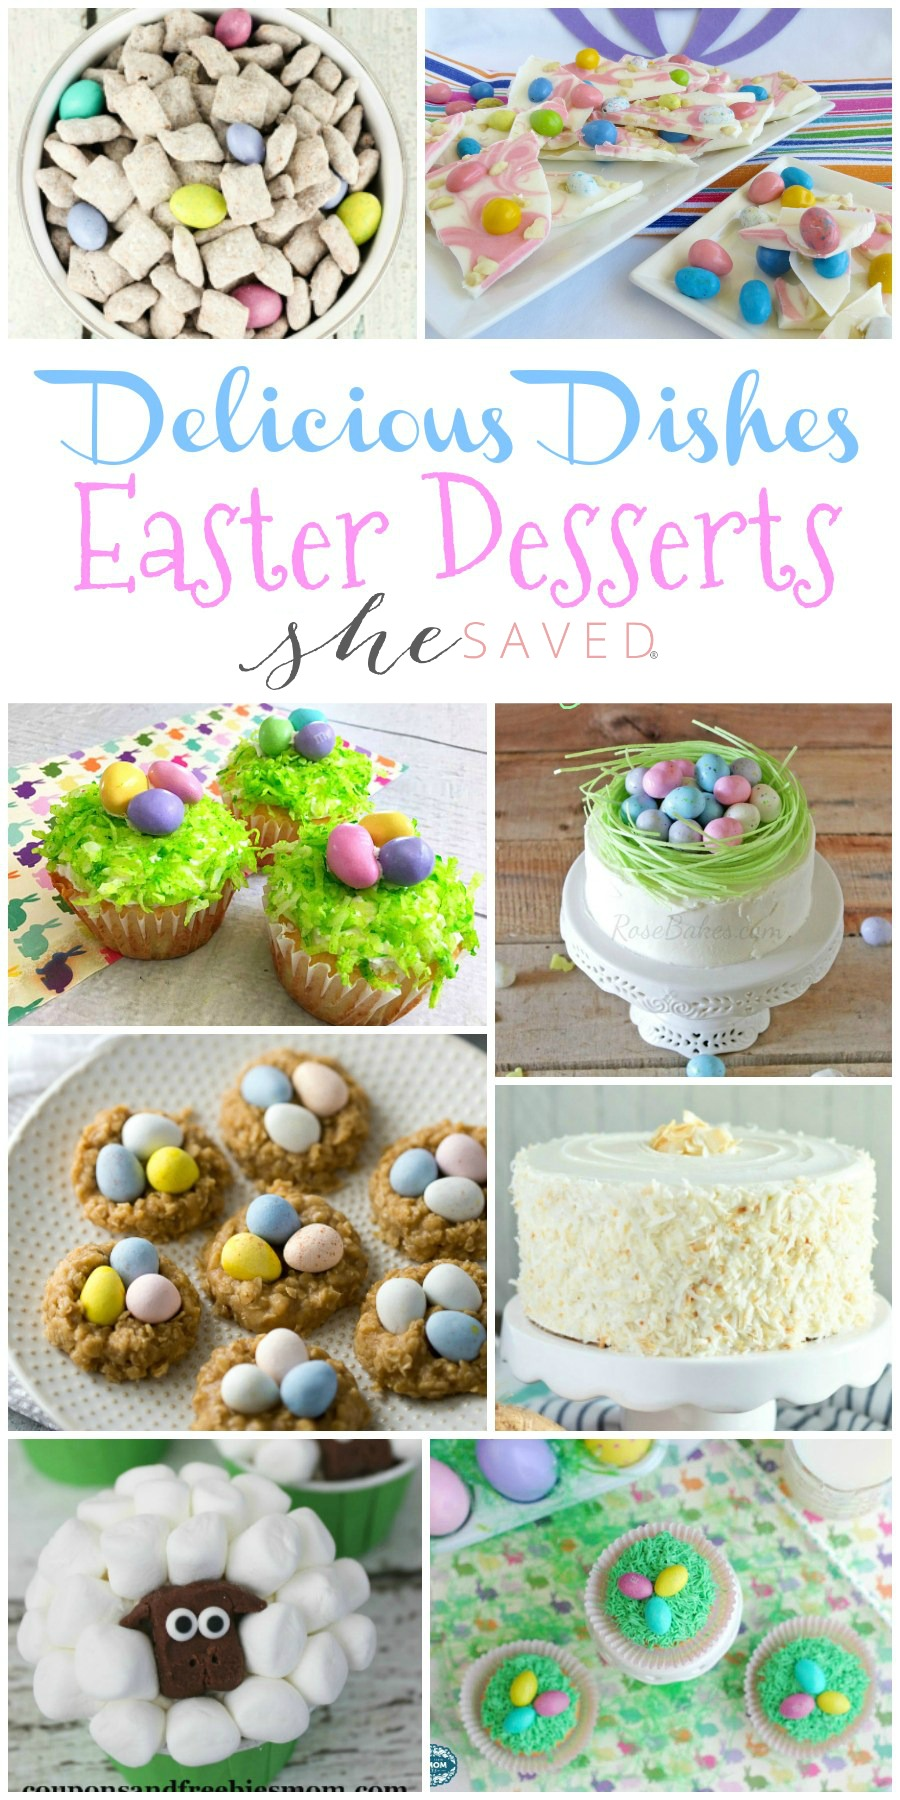 A wonderful round up of Easter desserts for your holiday celebration!